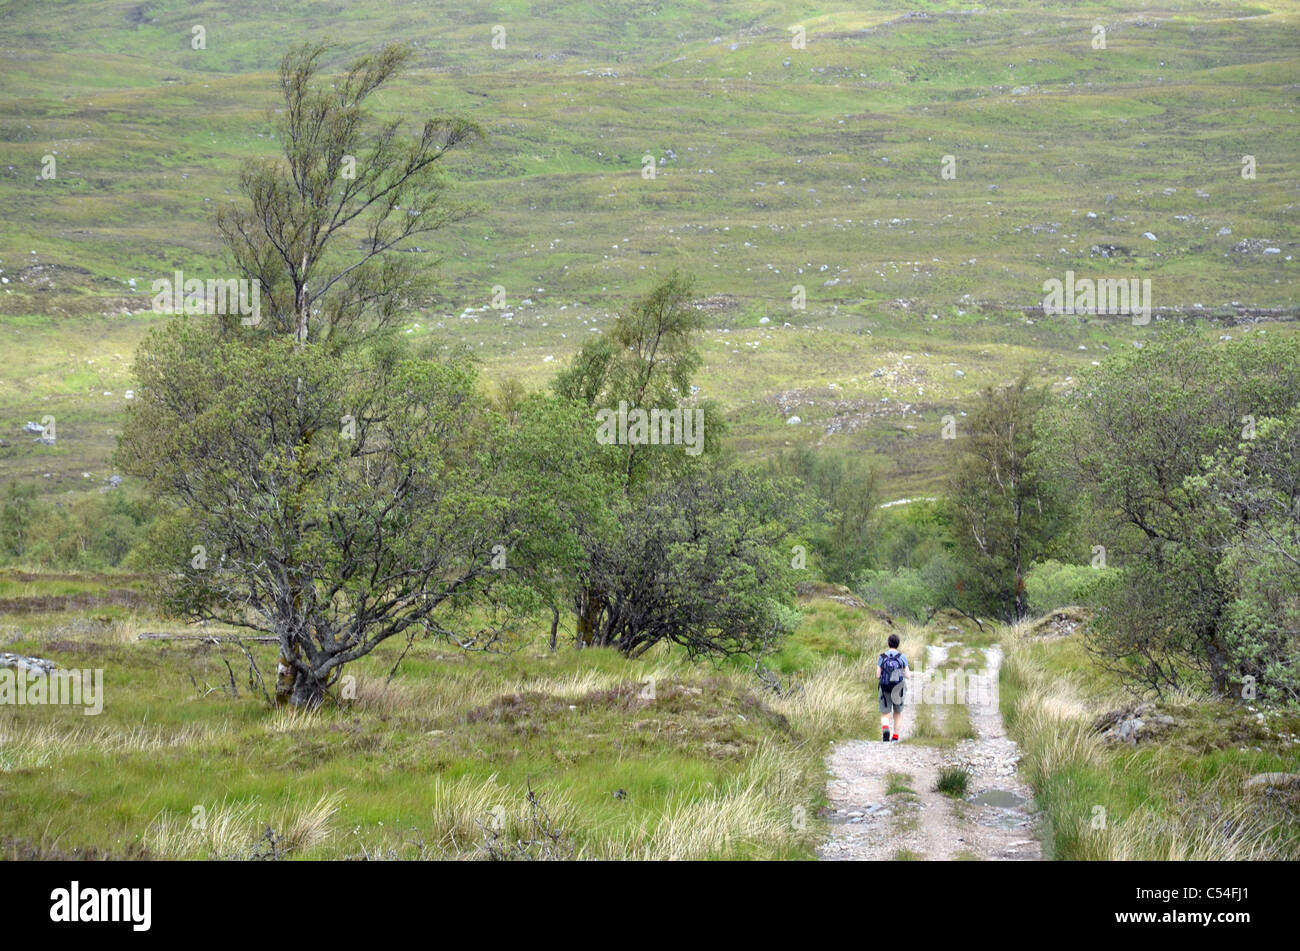 A walker on the track from Blackwater Reservoir down to Kinlochleven in the Scottish Highlands. - Stock Image